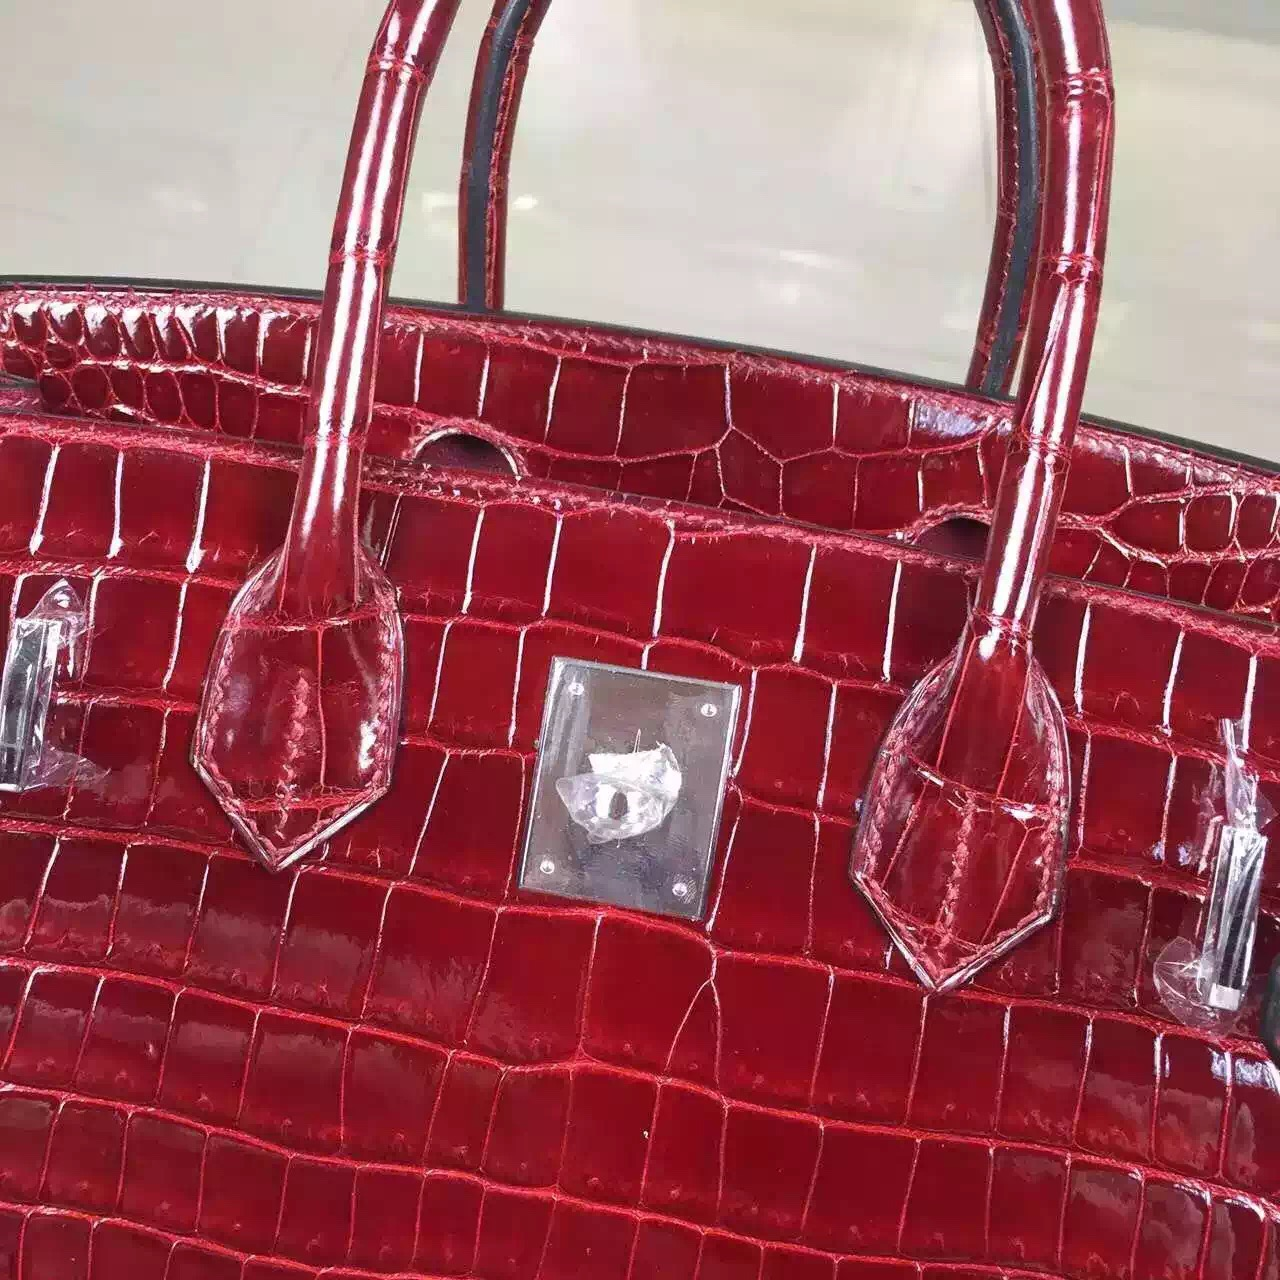 Discount Hermes Wine Red Original Porosus Crocodile Skin Birkin Bag 30cm